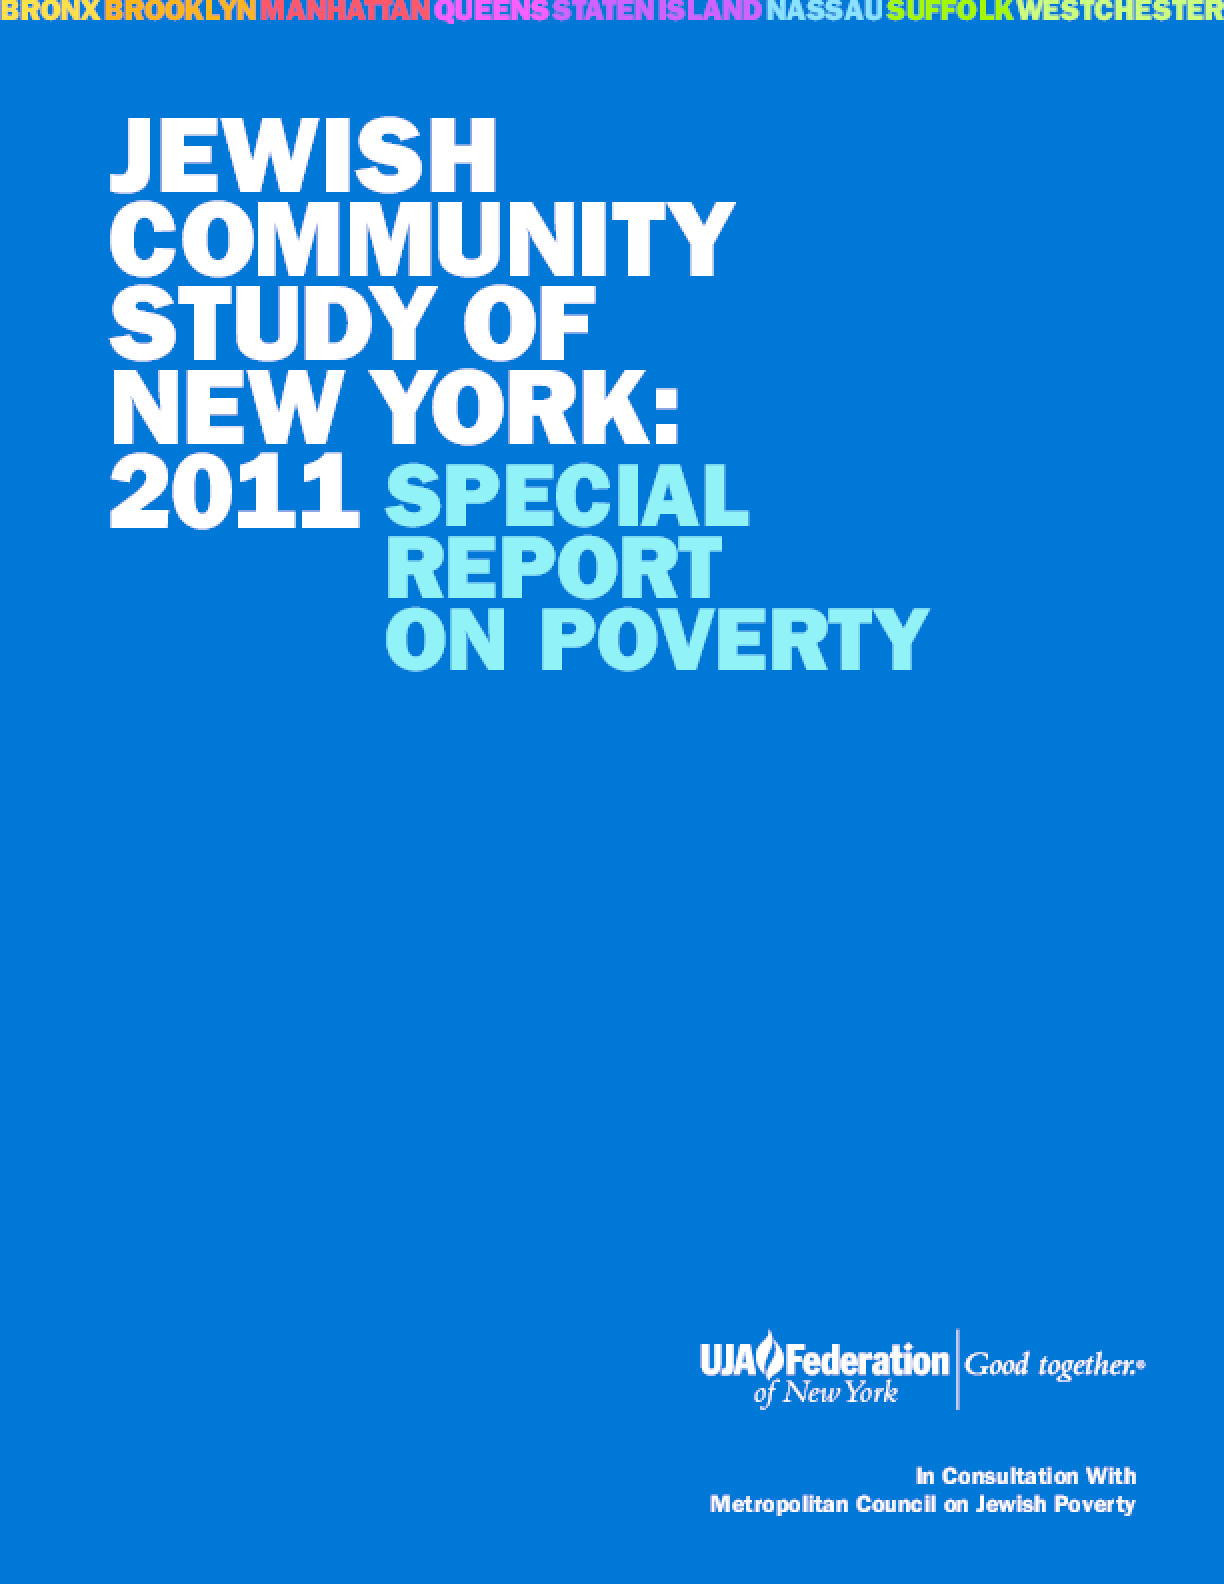 Jewish Community Study of New York: 2011 Special Report on Poverty